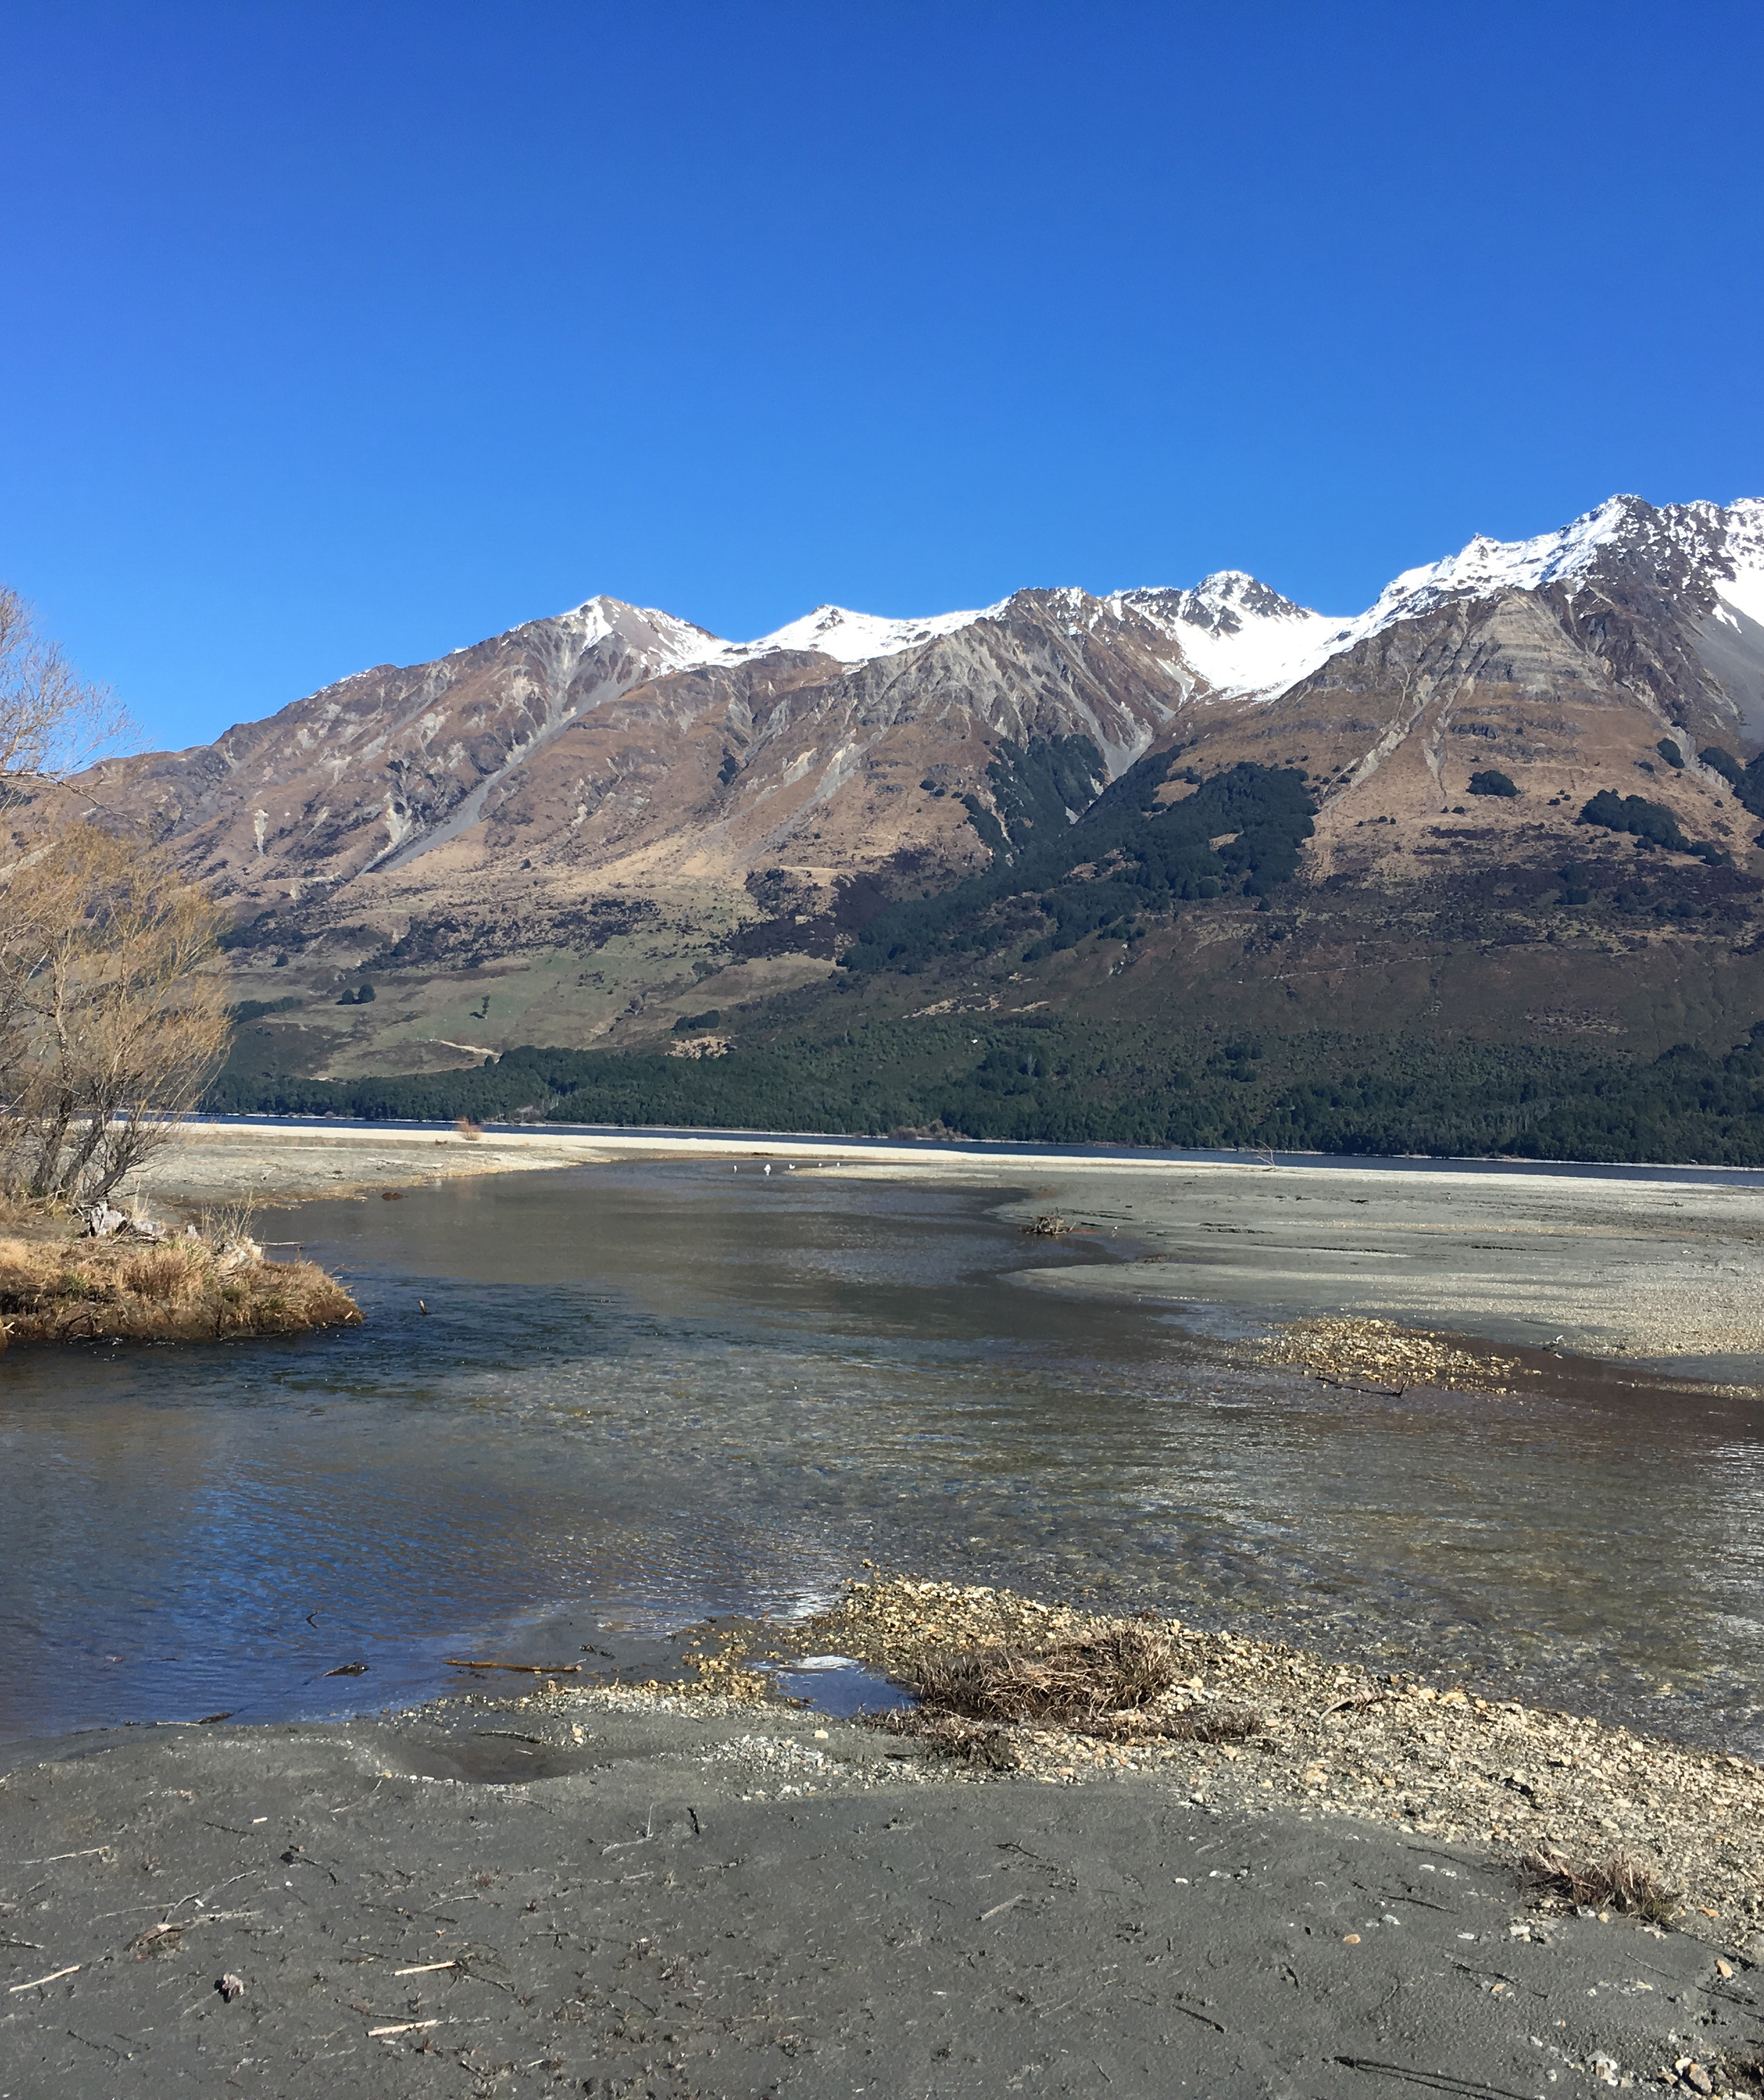 e3s investigates wastewater options for Glenorchy